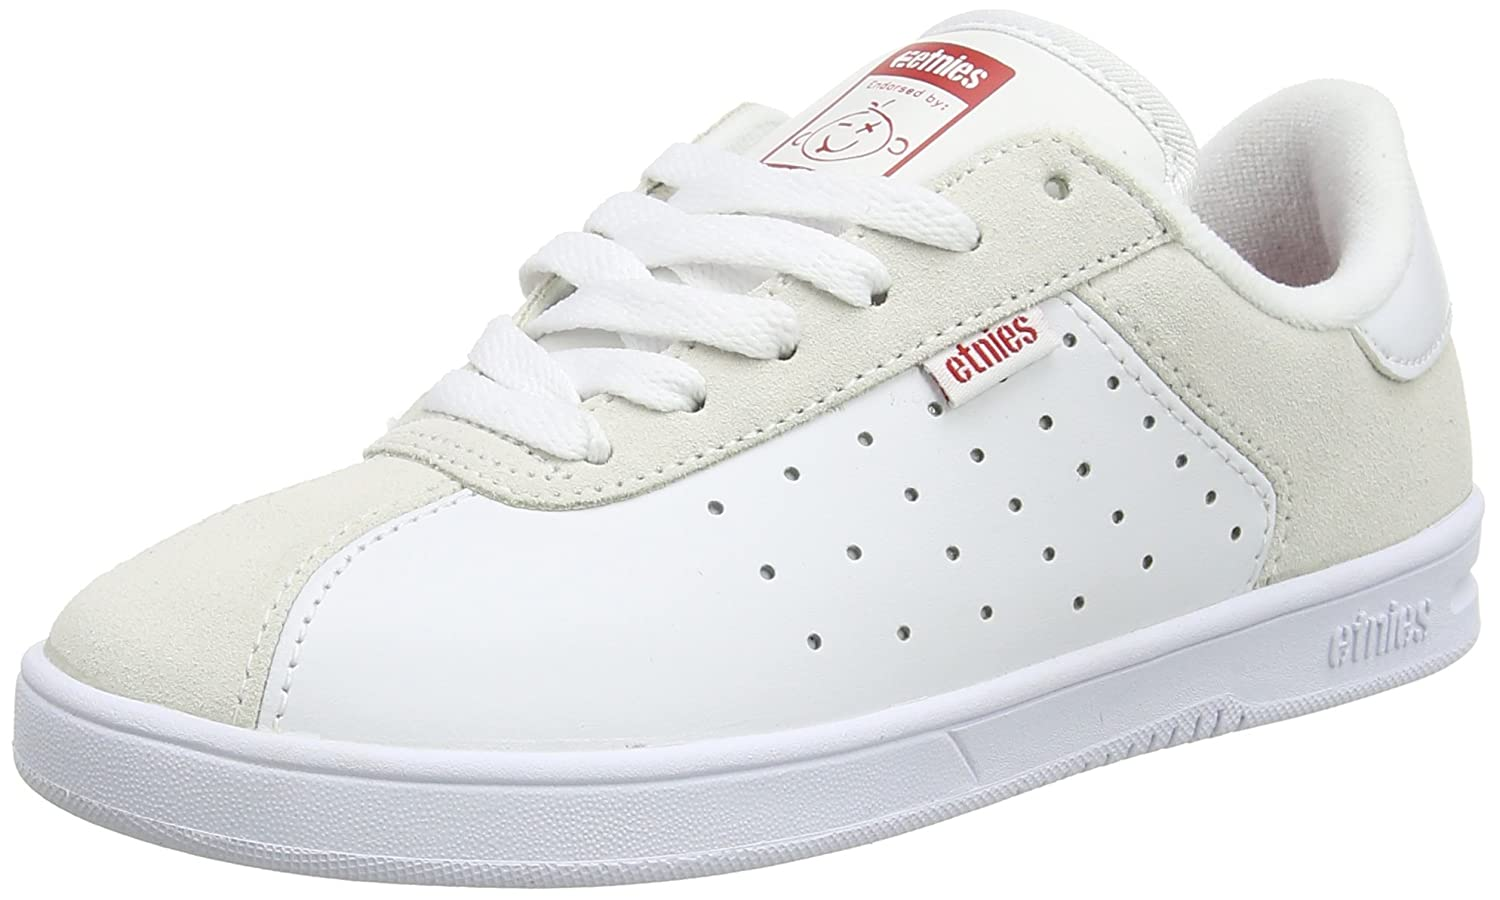 Etnies Women's The Scam W's Skate Shoe B01IE744S4 6.5 B(M) US|White